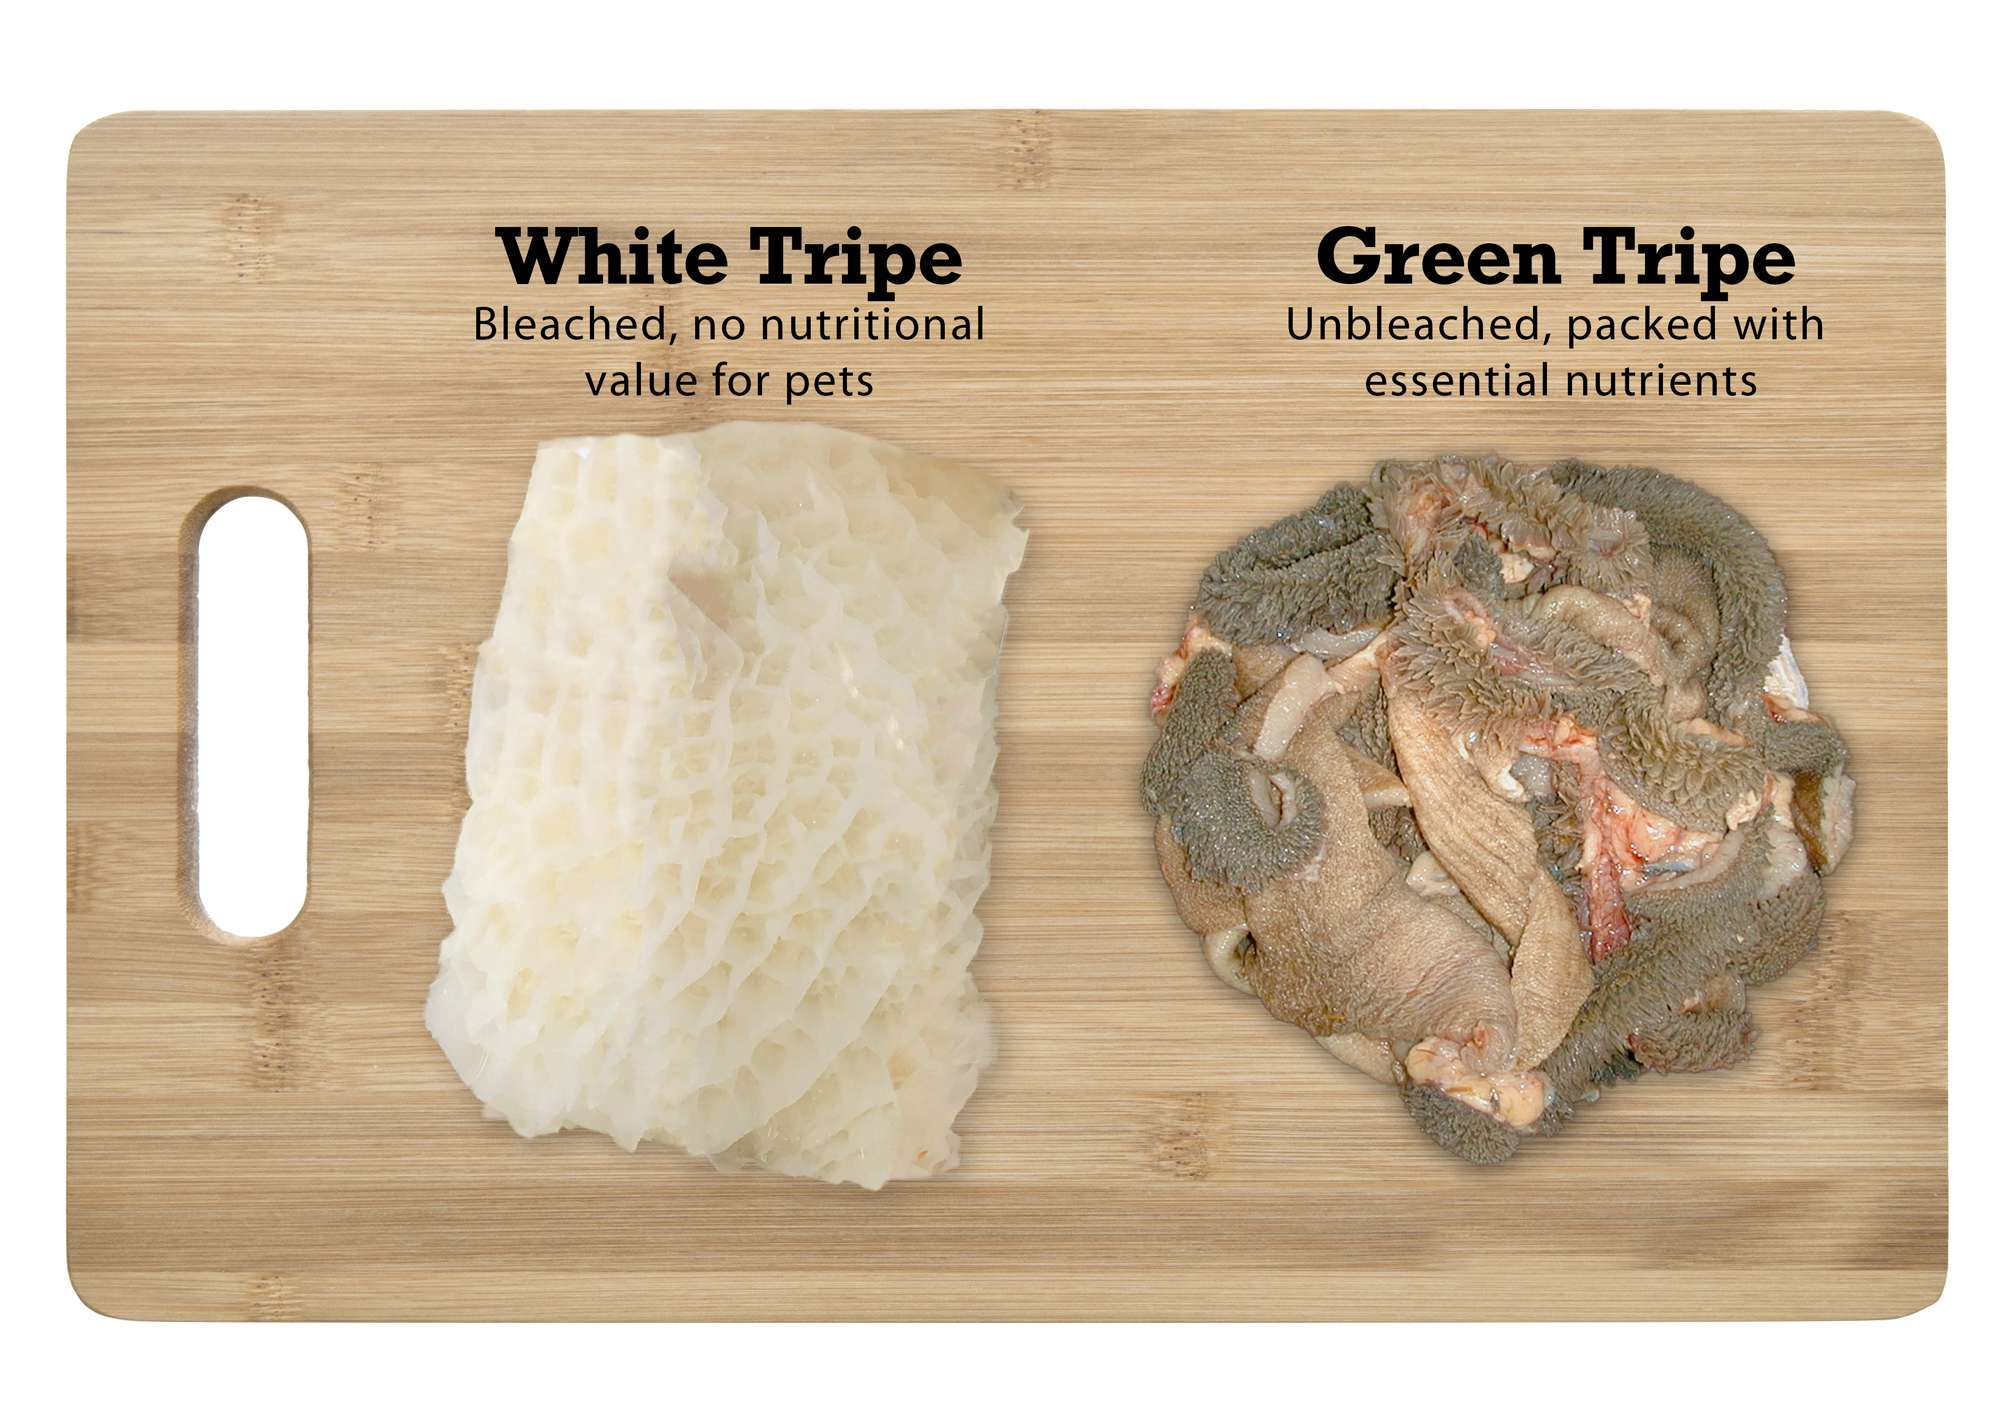 Comparison between White Tripe and Green Tripe